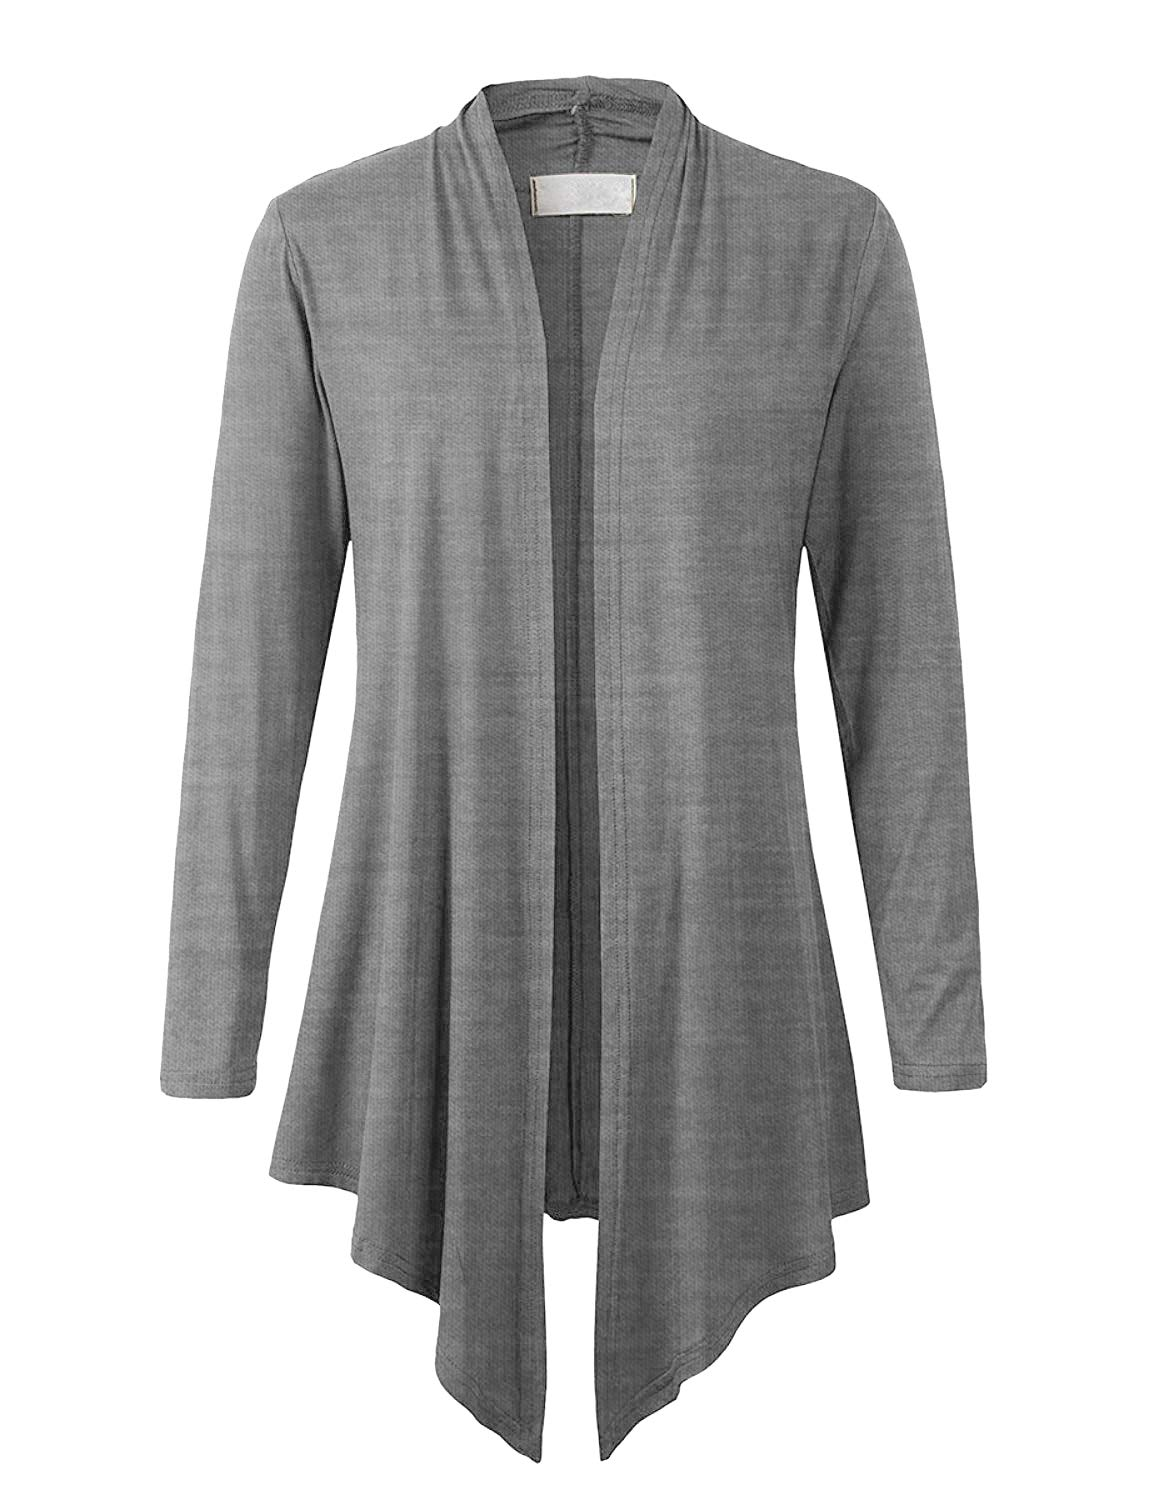 Eanklosco Women Open Front Cardigan Plus Size Drape Long Sleeve Coat (Gray, XL)